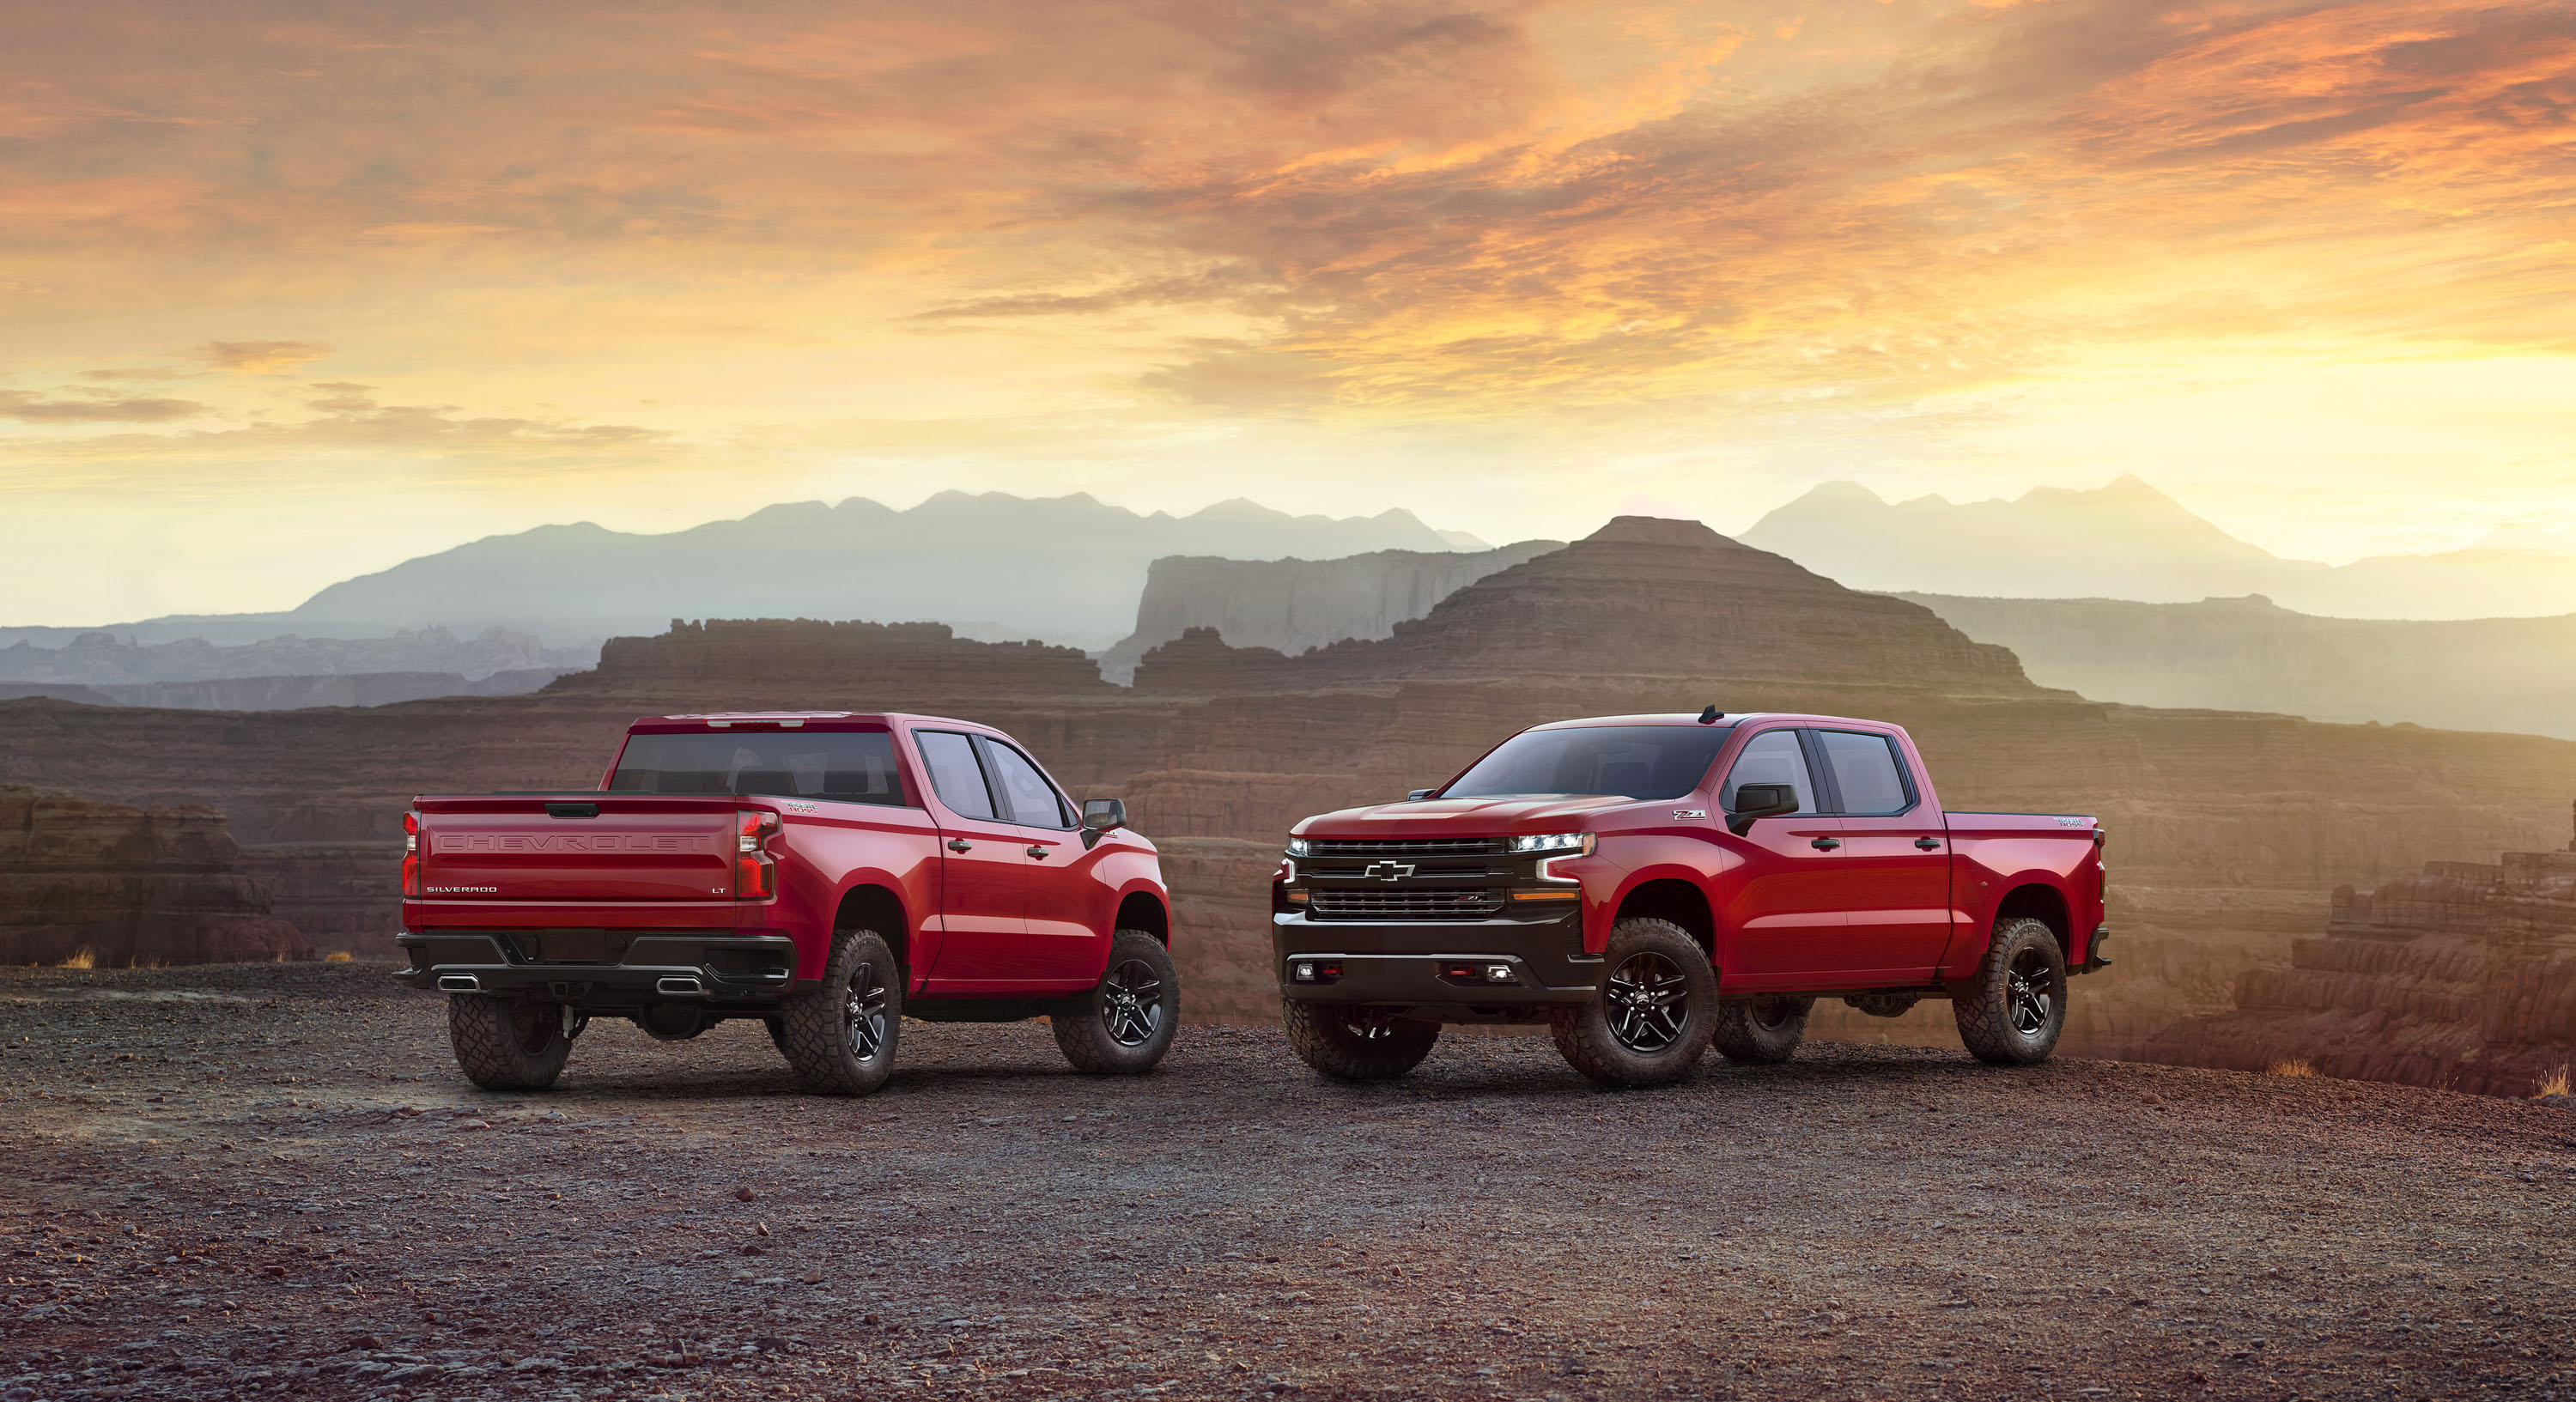 2015 Gm Pick Up Trailer Wiring Diagram Bots New Vs Old Exterior Updates To The 2019 Chevrolet Silverado Top Chevy Plug